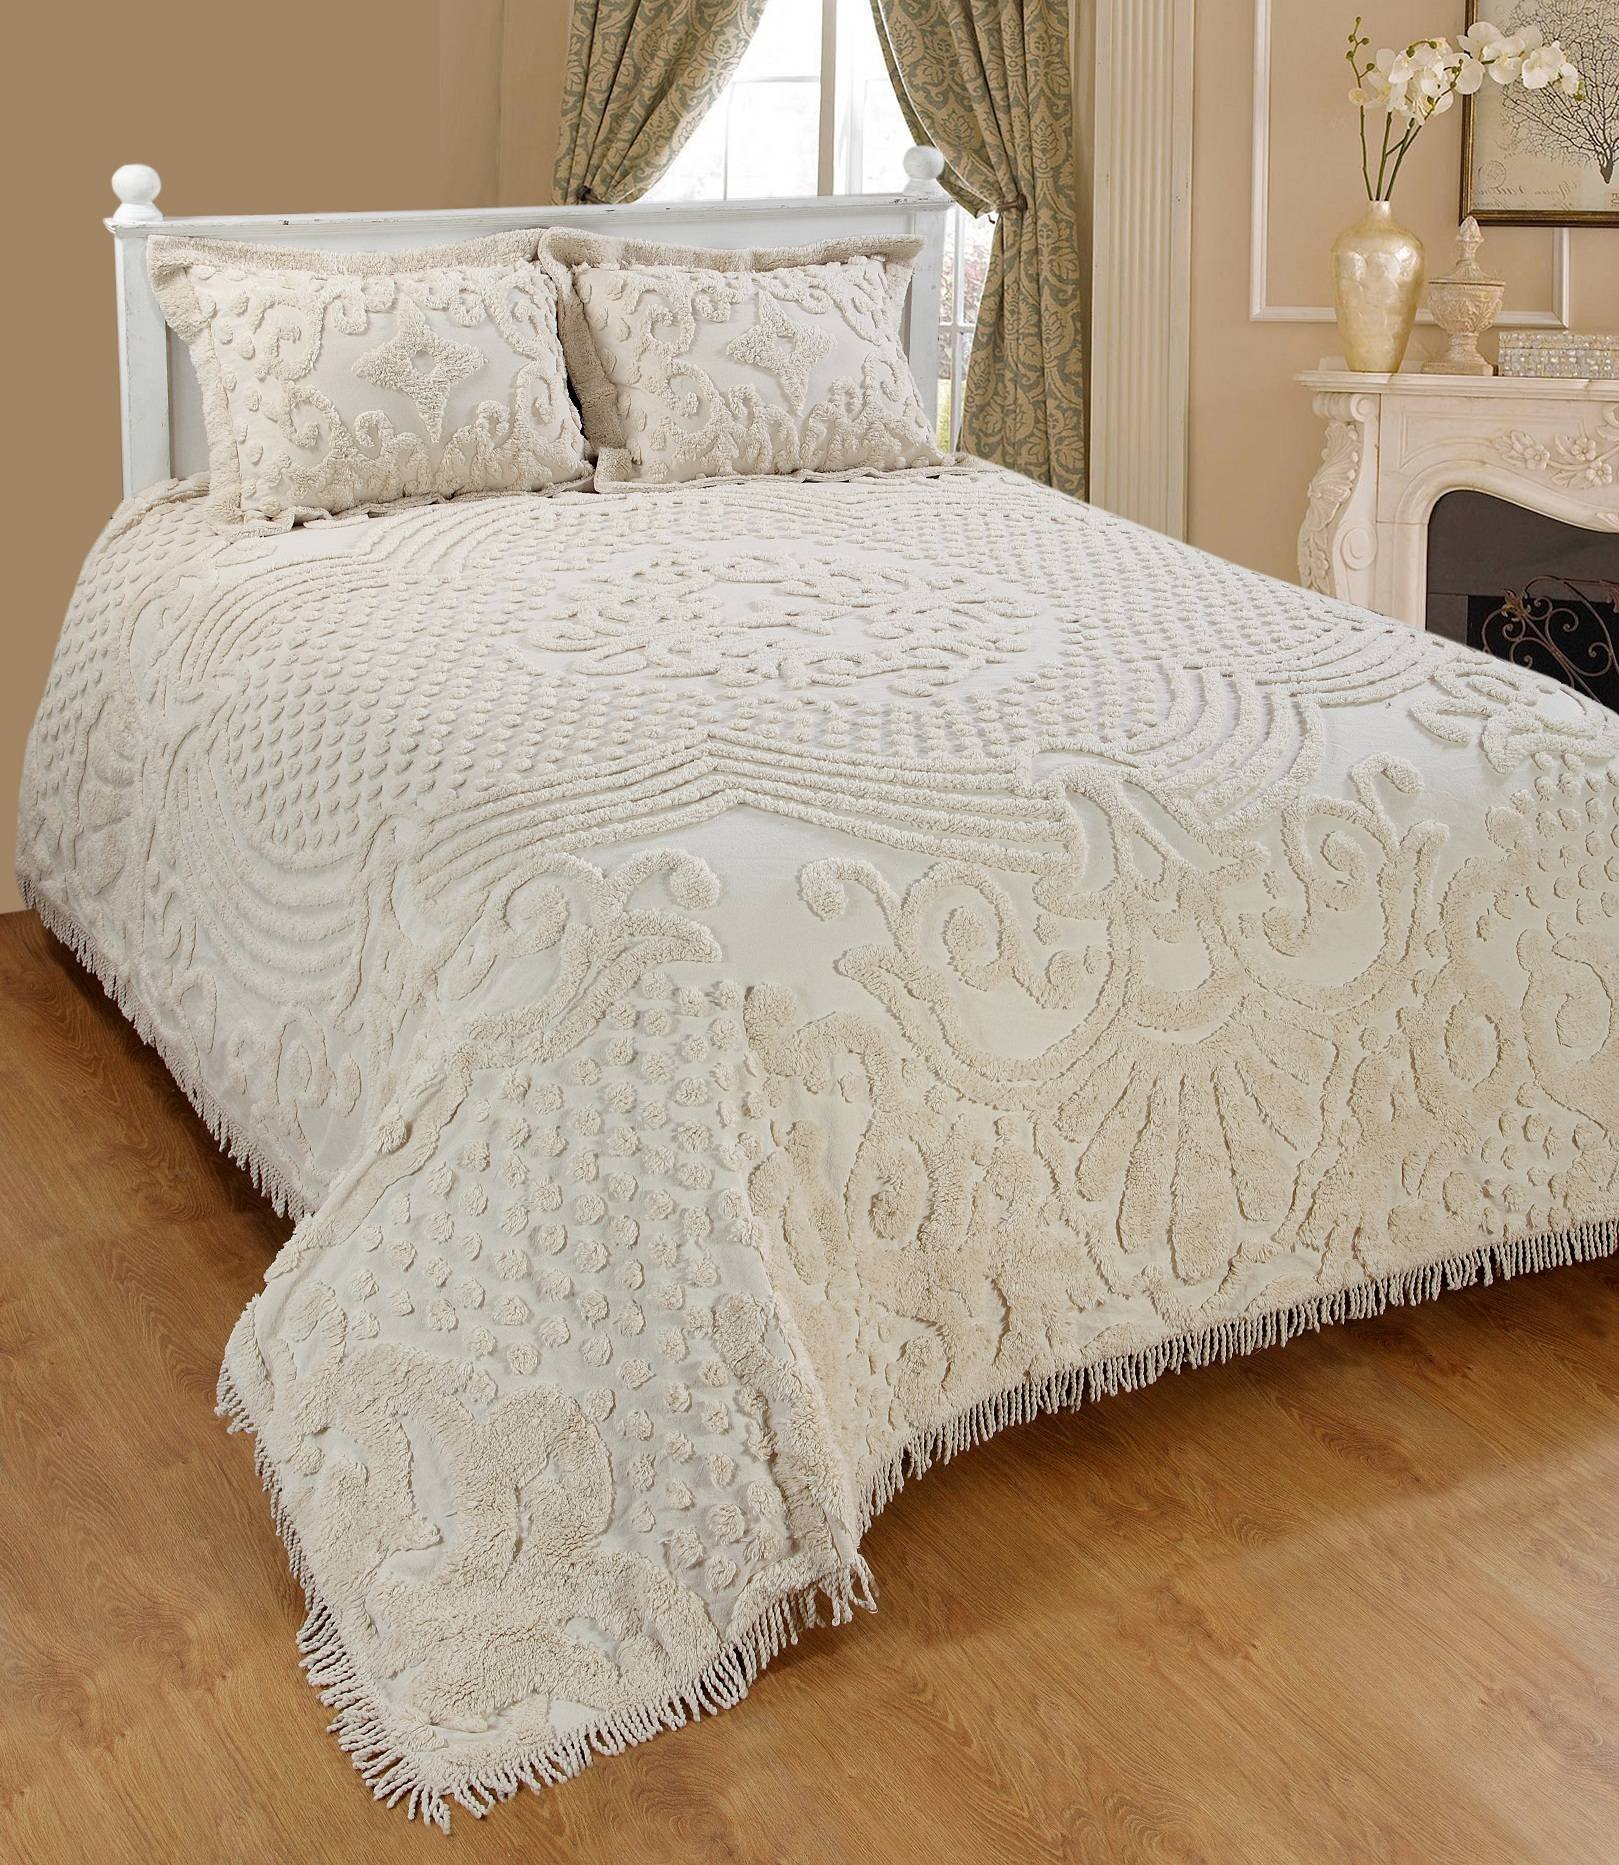 Saral Home Fashions Jewel Chenille Bedspread with Sham, Twin, Ivory